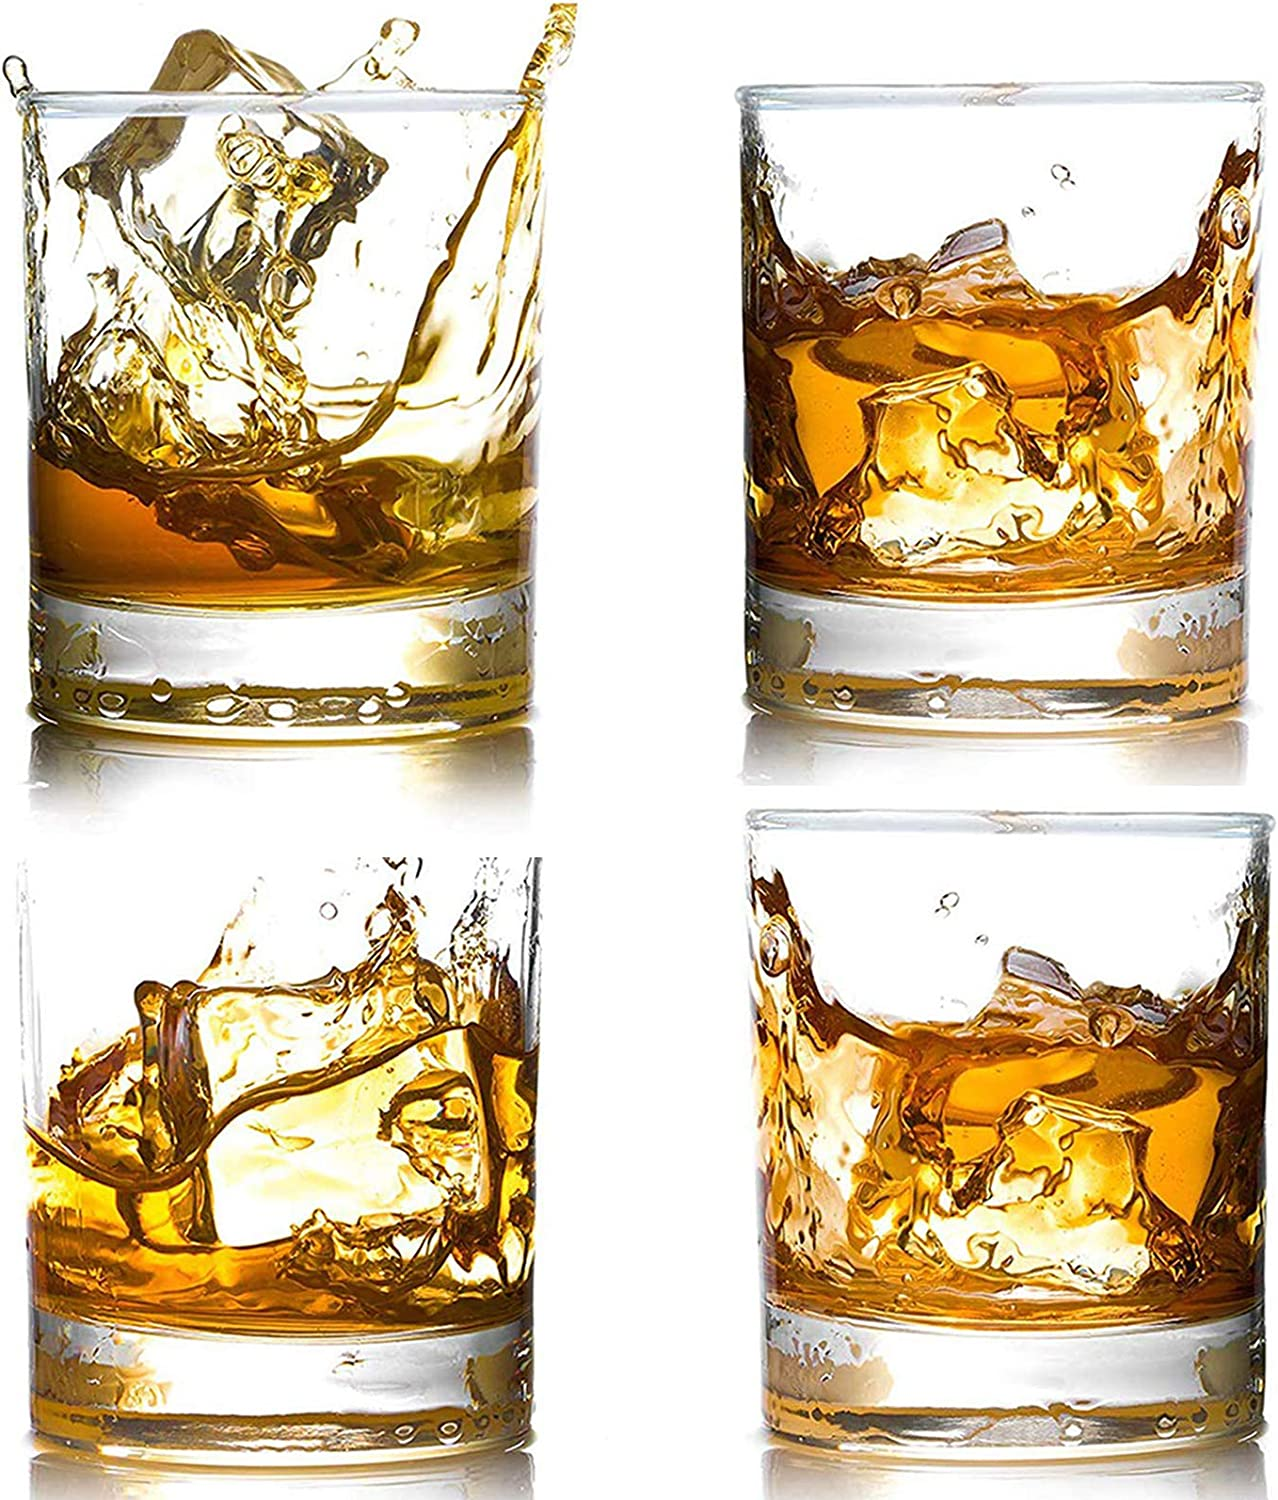 4 Pack Daily bargain sale Whiskey Glasses 12 Fashioned Scotch Old Whiske OZ Ranking TOP1